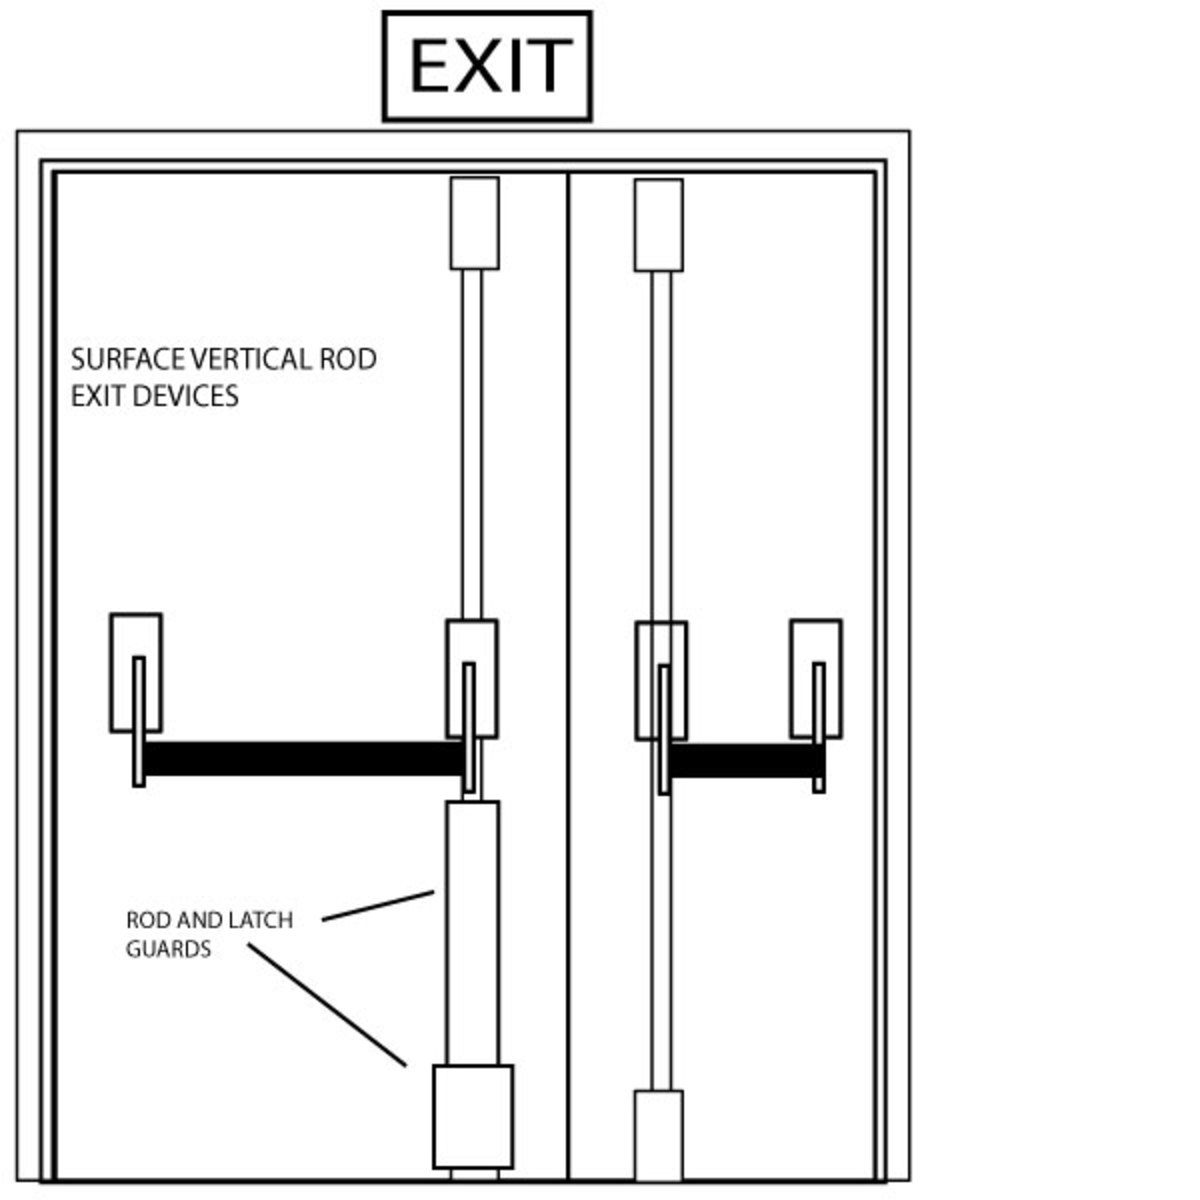 Fig. 3 - Surface Vertical Rod (SVR) Crossbar Exit Devices on Uneven Pair of Doors, with Rod and Latch Guards on Active Leaf